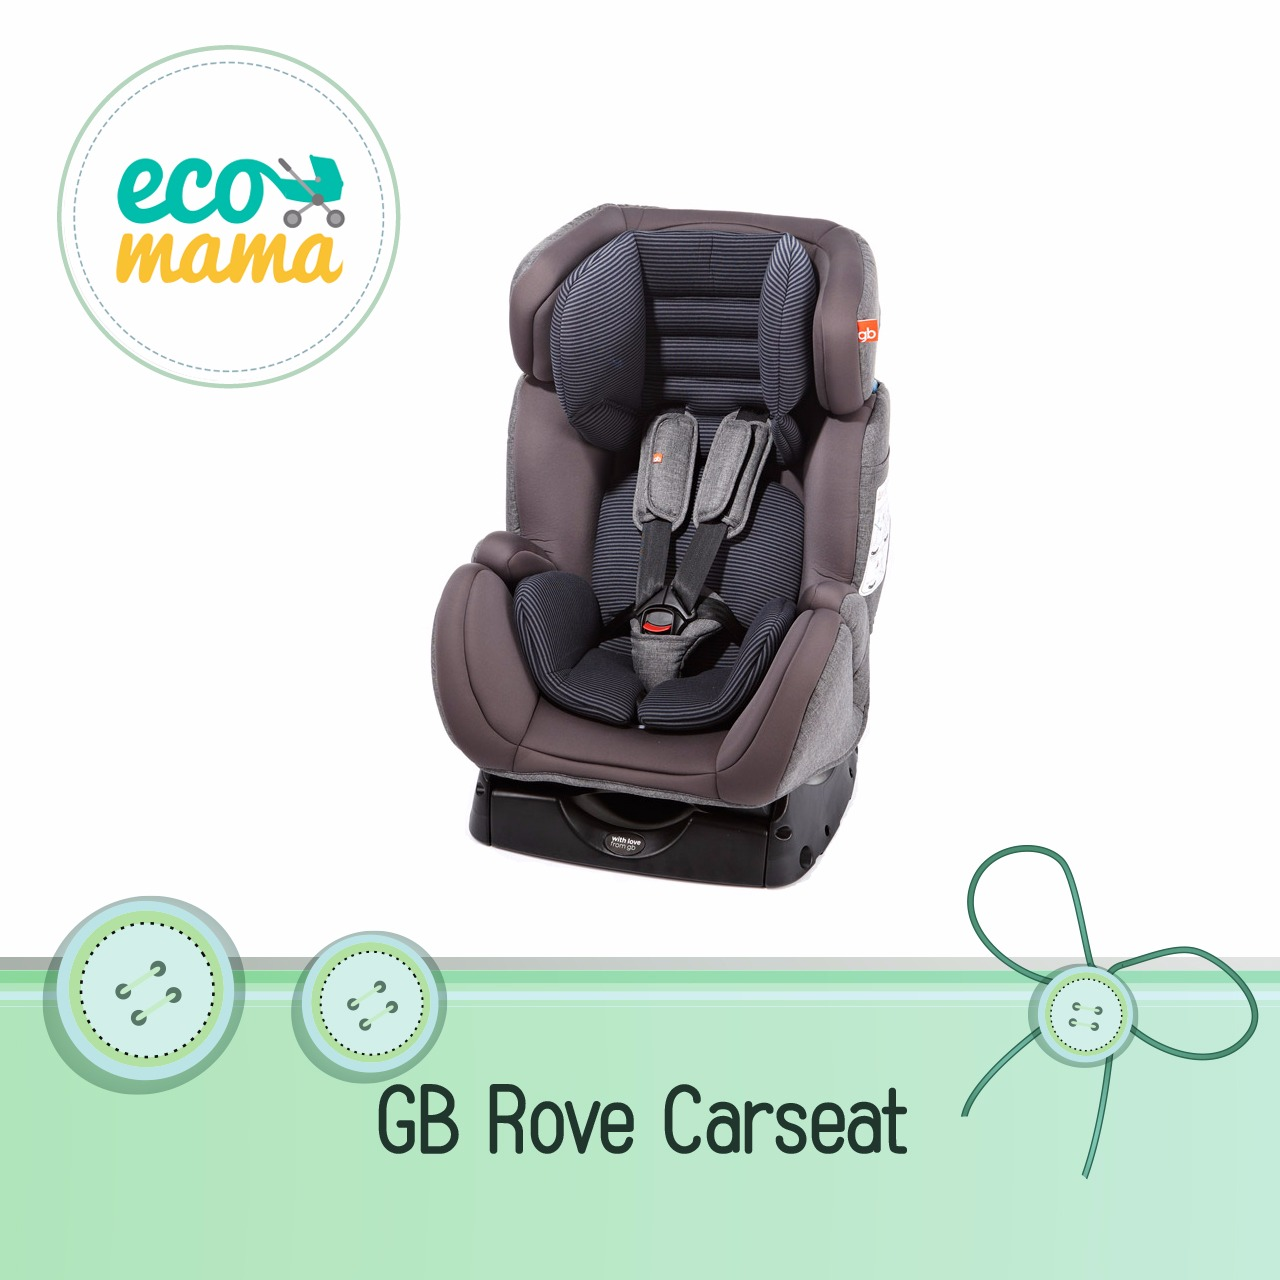 GB Rove CS888E Carseat